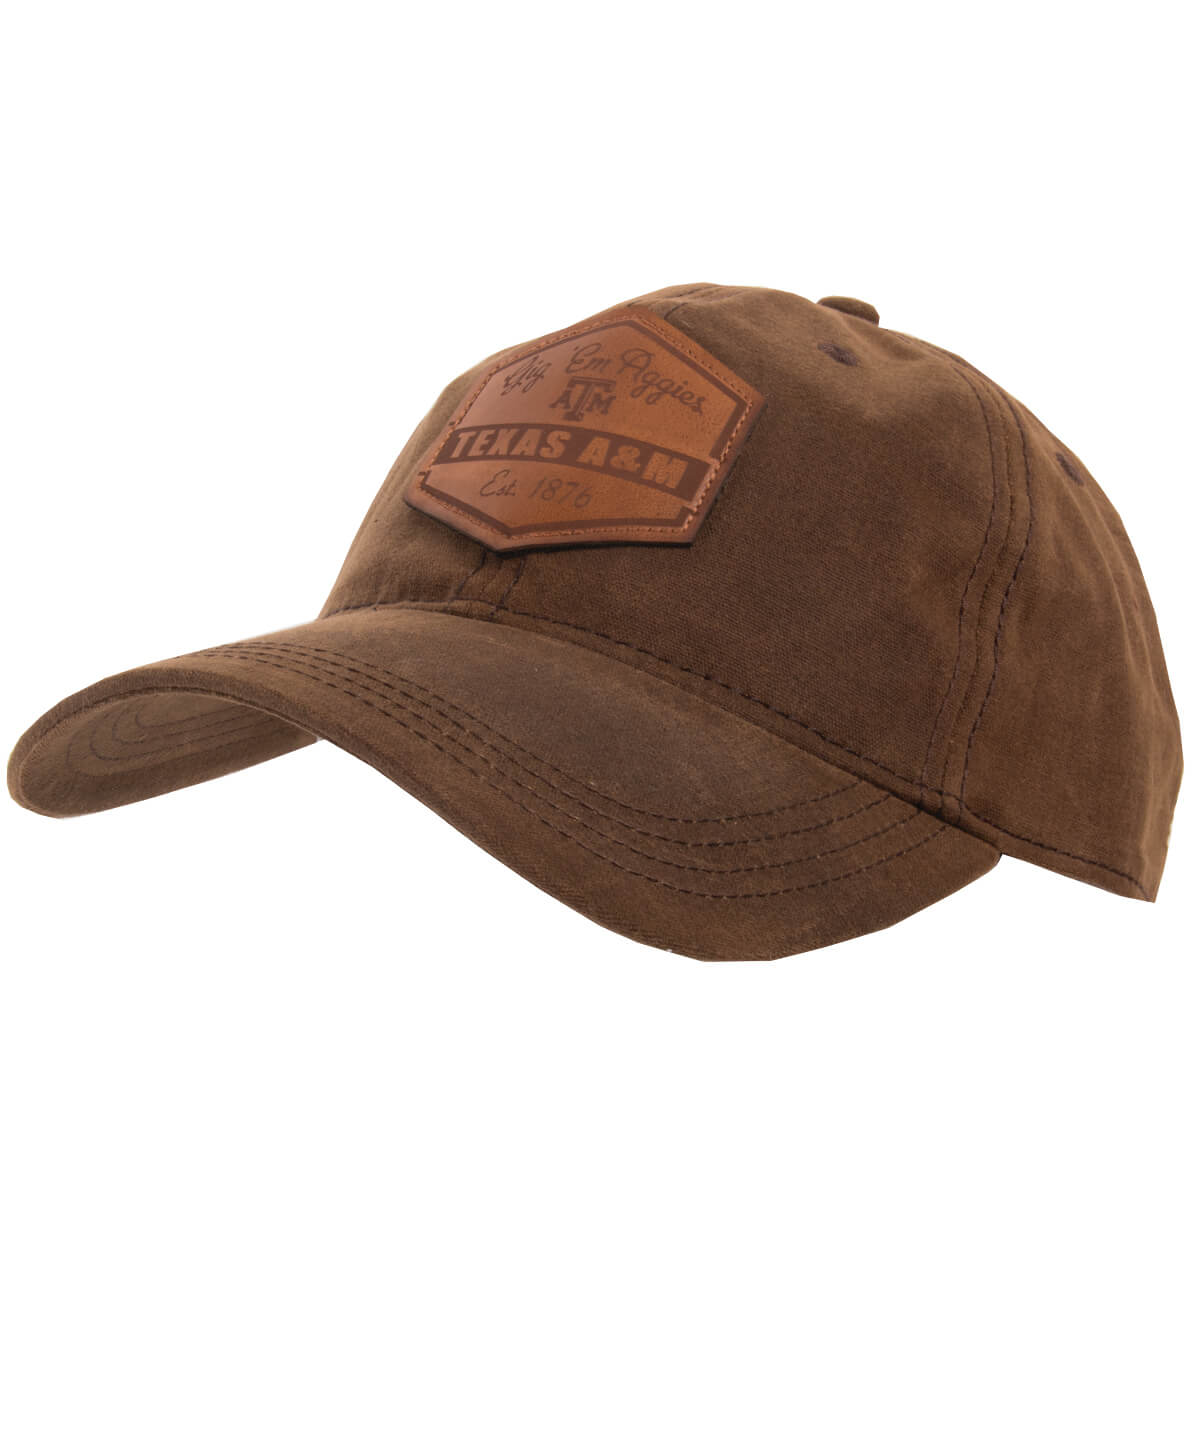 090a1f68294 This Legacy dark brown waxed cotton Texas A M cap is the perfect cap for  those Aggies that one to show off their school spirit in a more alternative  way!